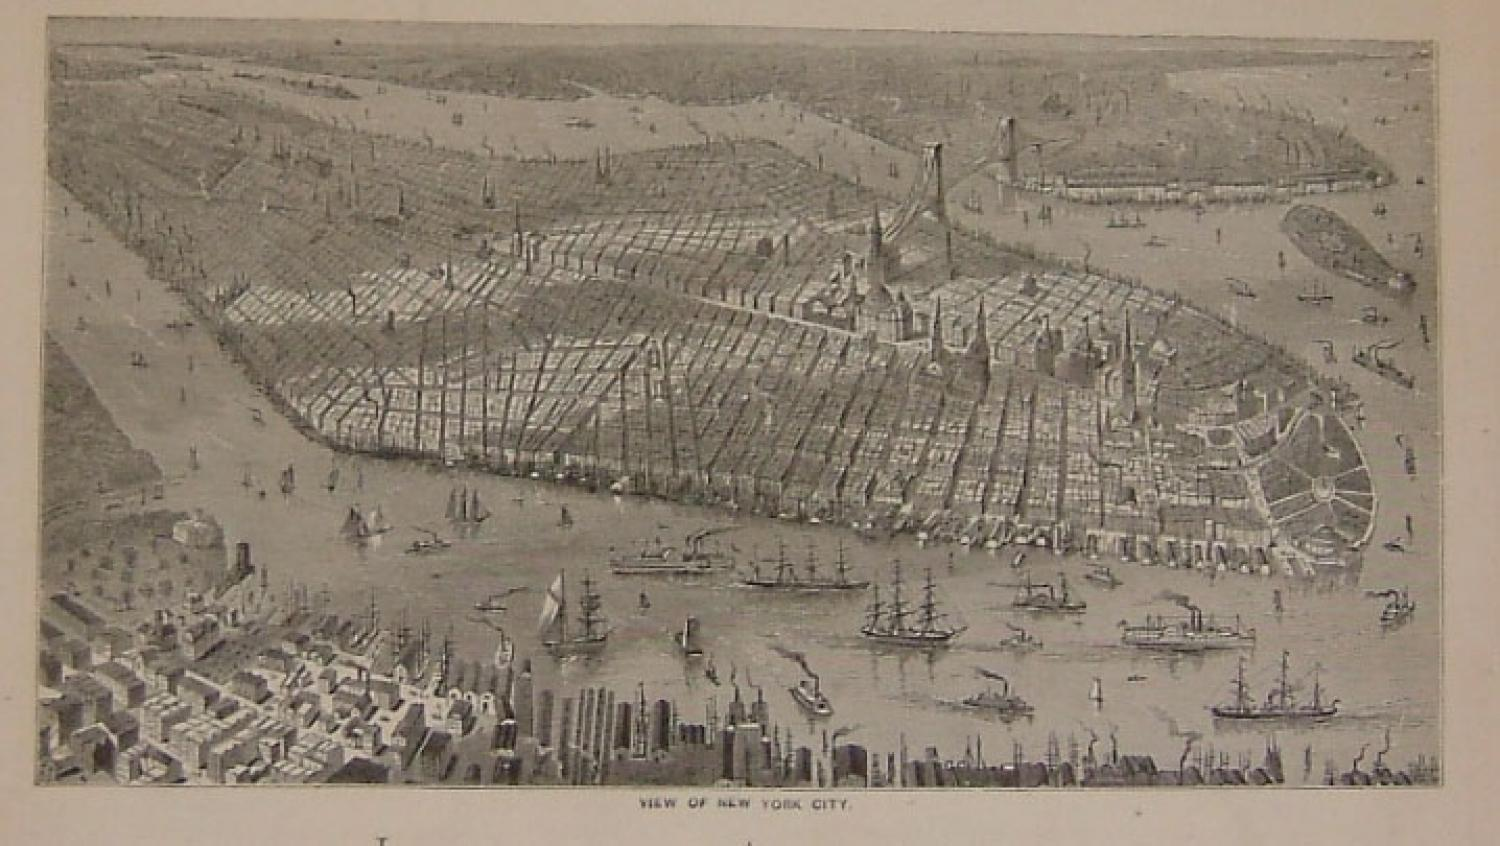 Stinton - View of New York City